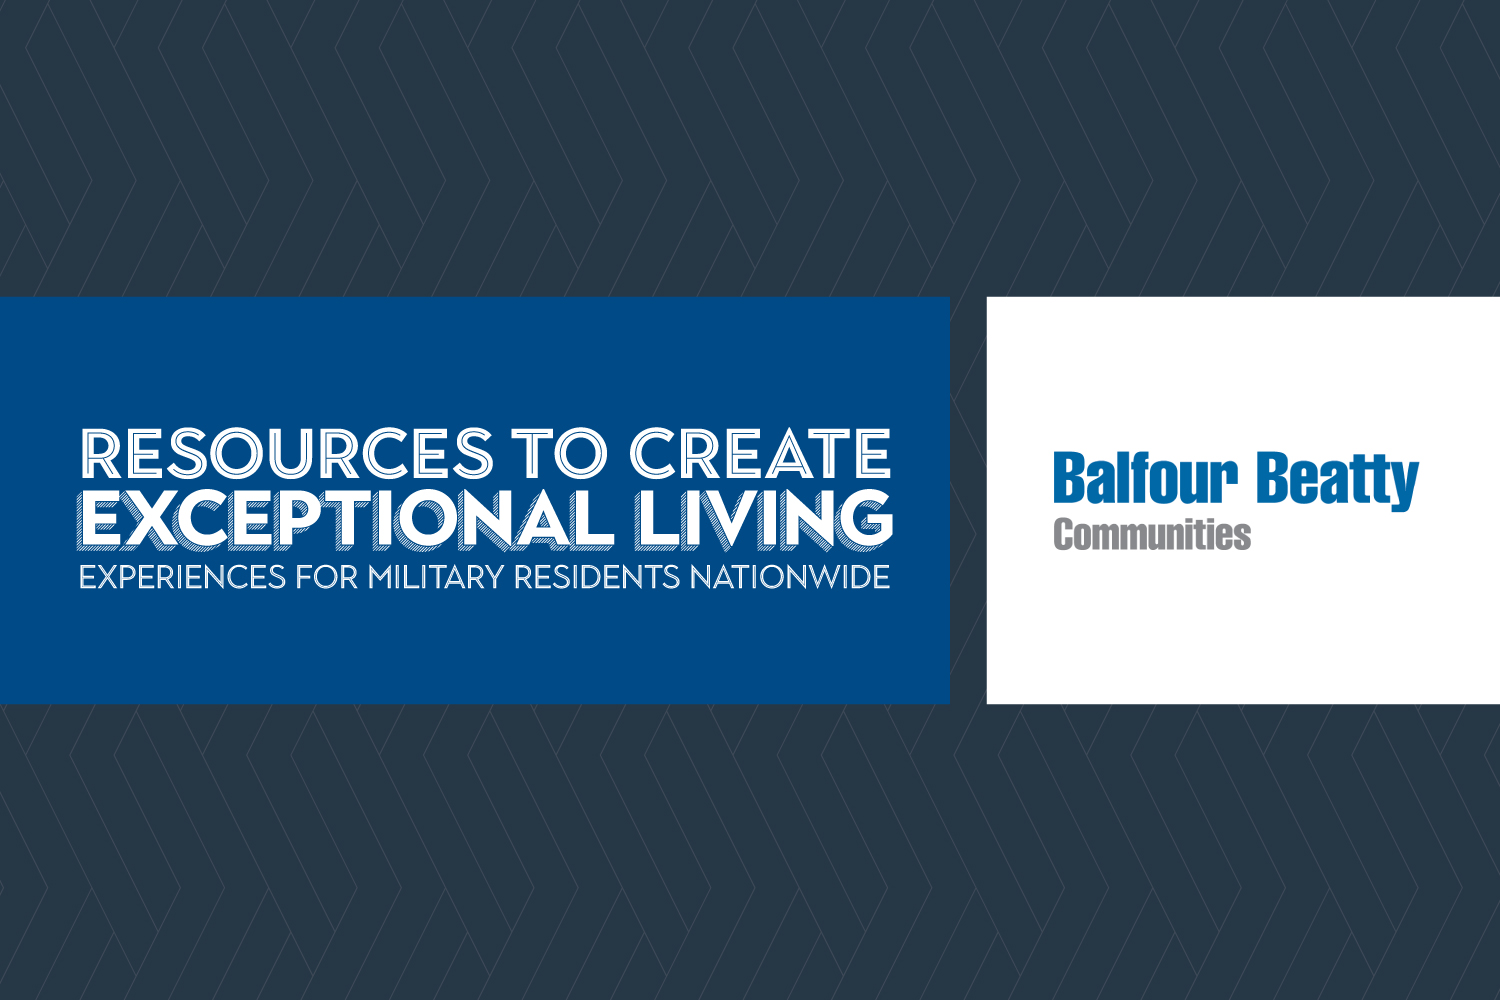 Balfour Beatty Communities Launches Innovative Programs, Resources  to Create Exceptional Living Experiences for Military Residents Nationwide